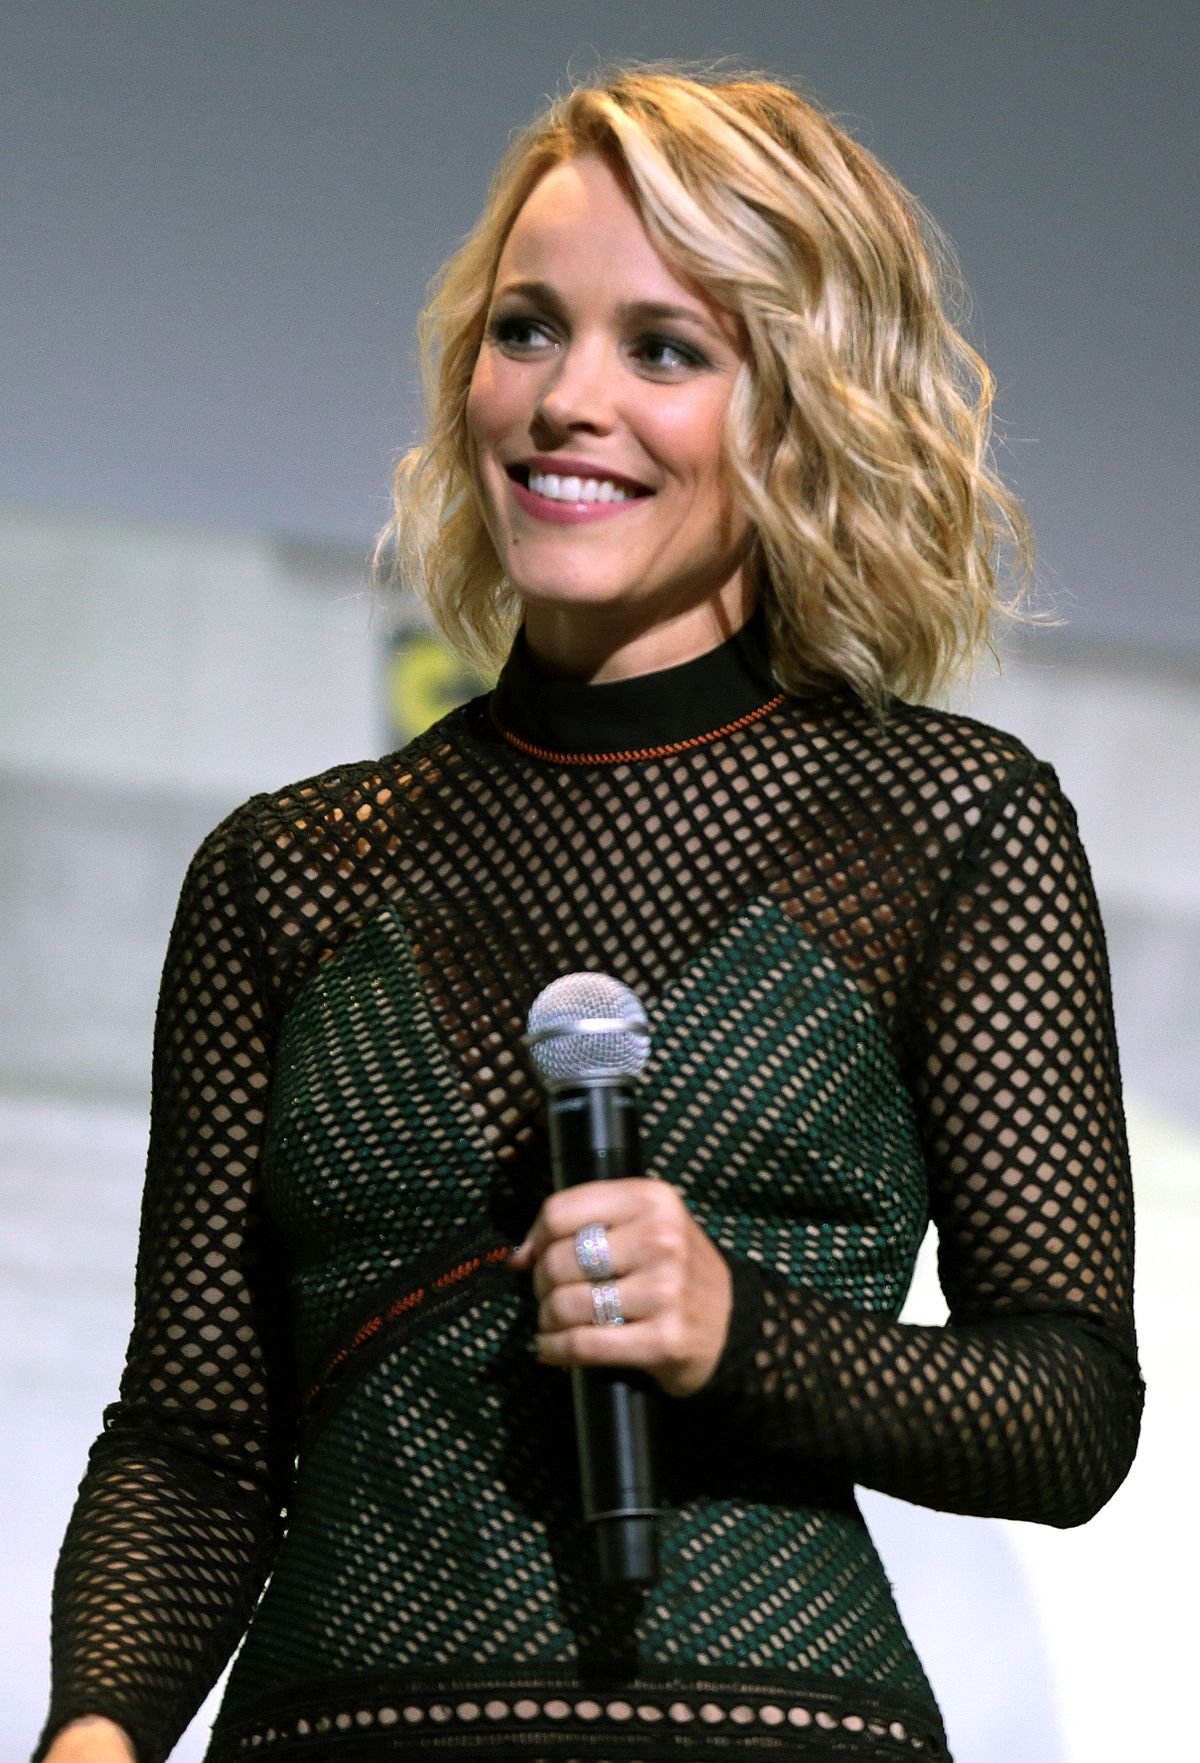 Rachel mcadams morning glory